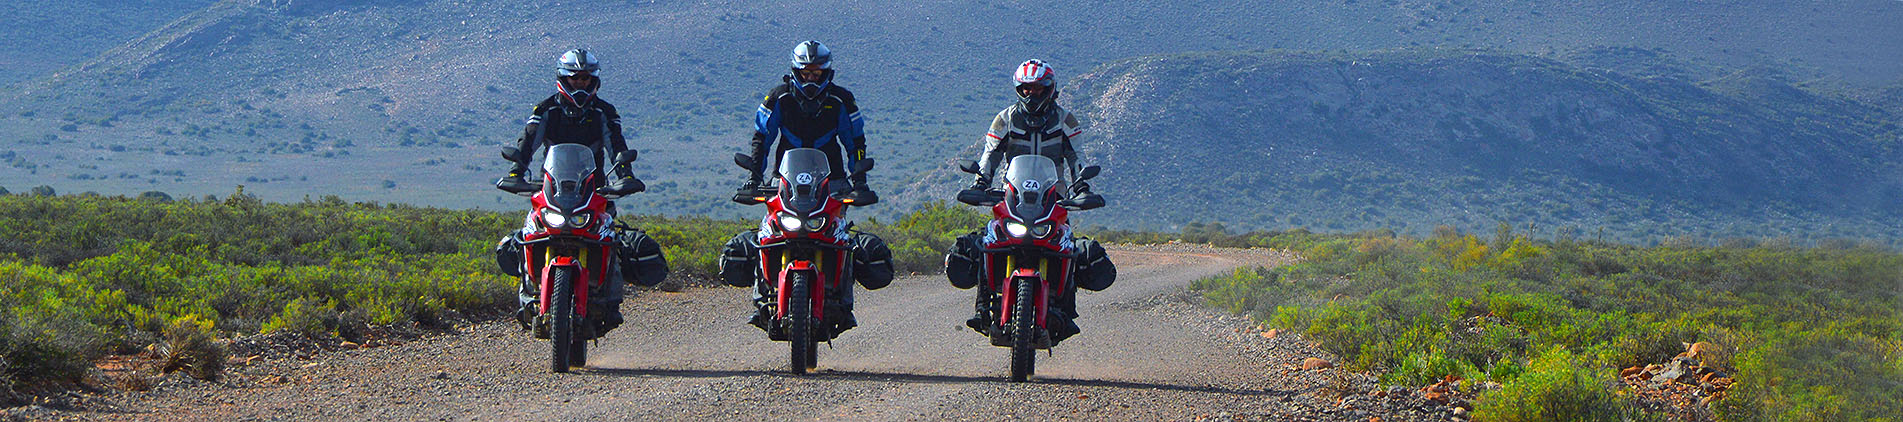 Africa Twin Rentals & Tours